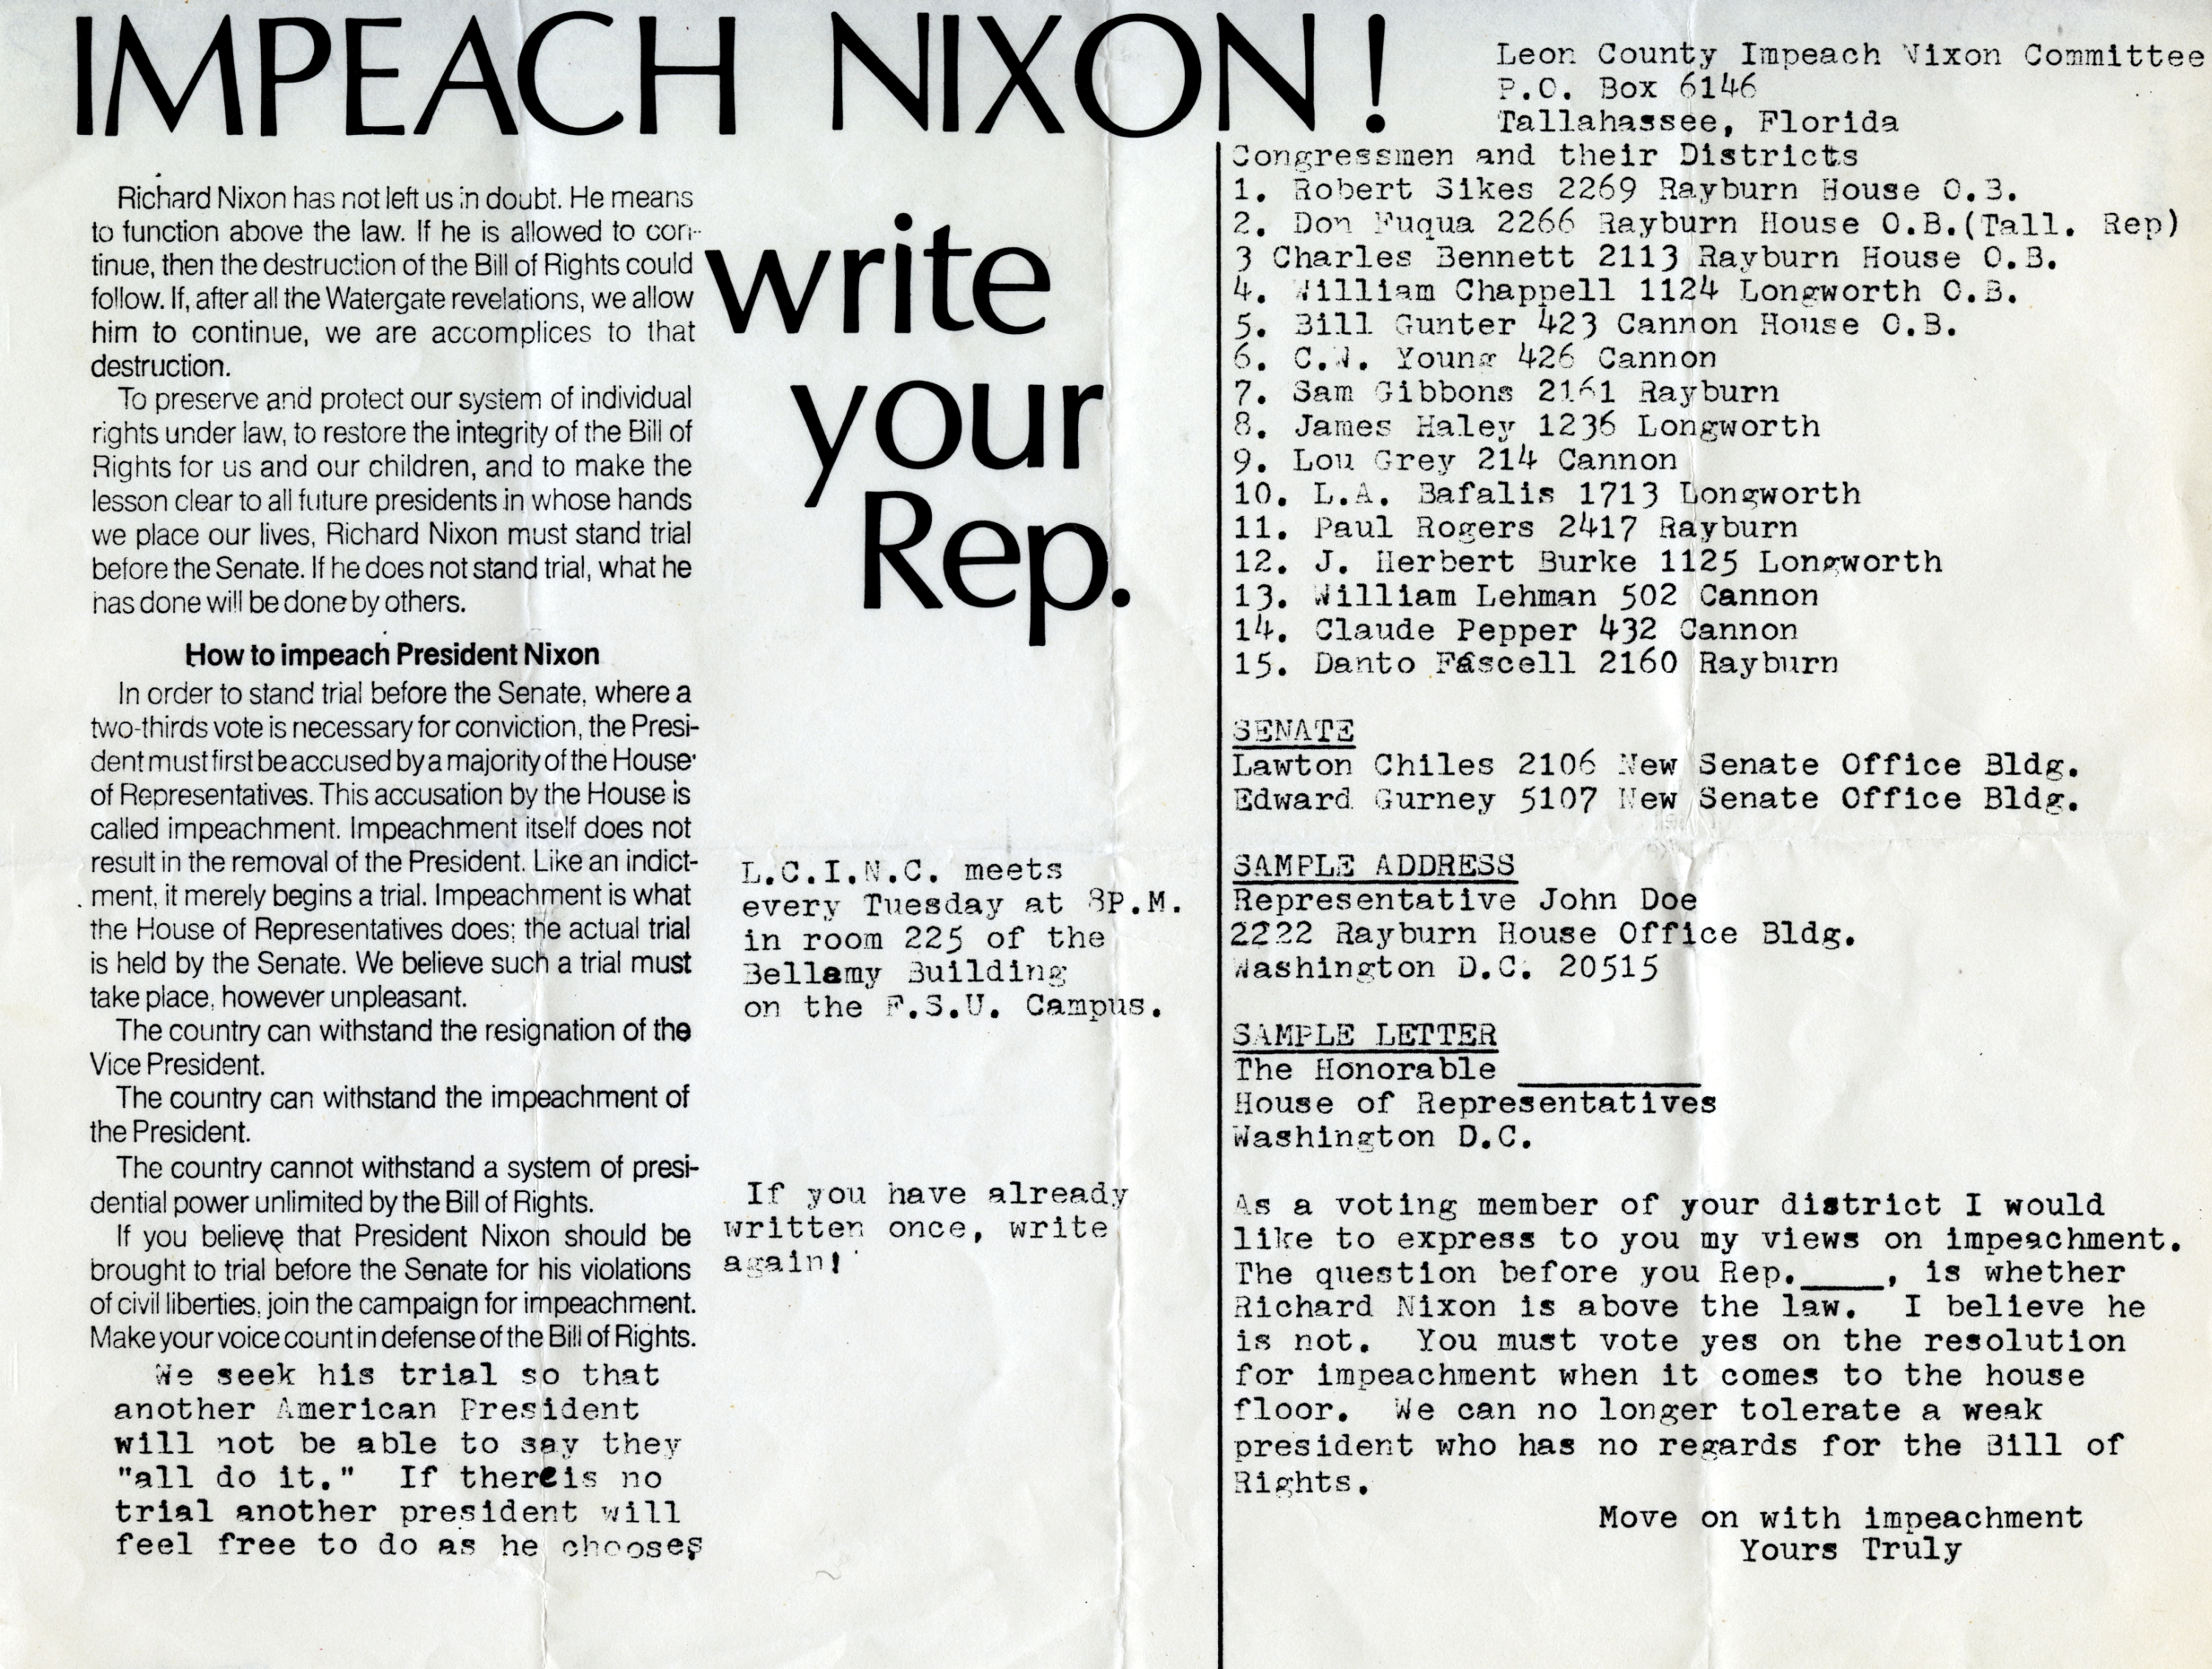 Impeach Nixon, write your Rep.